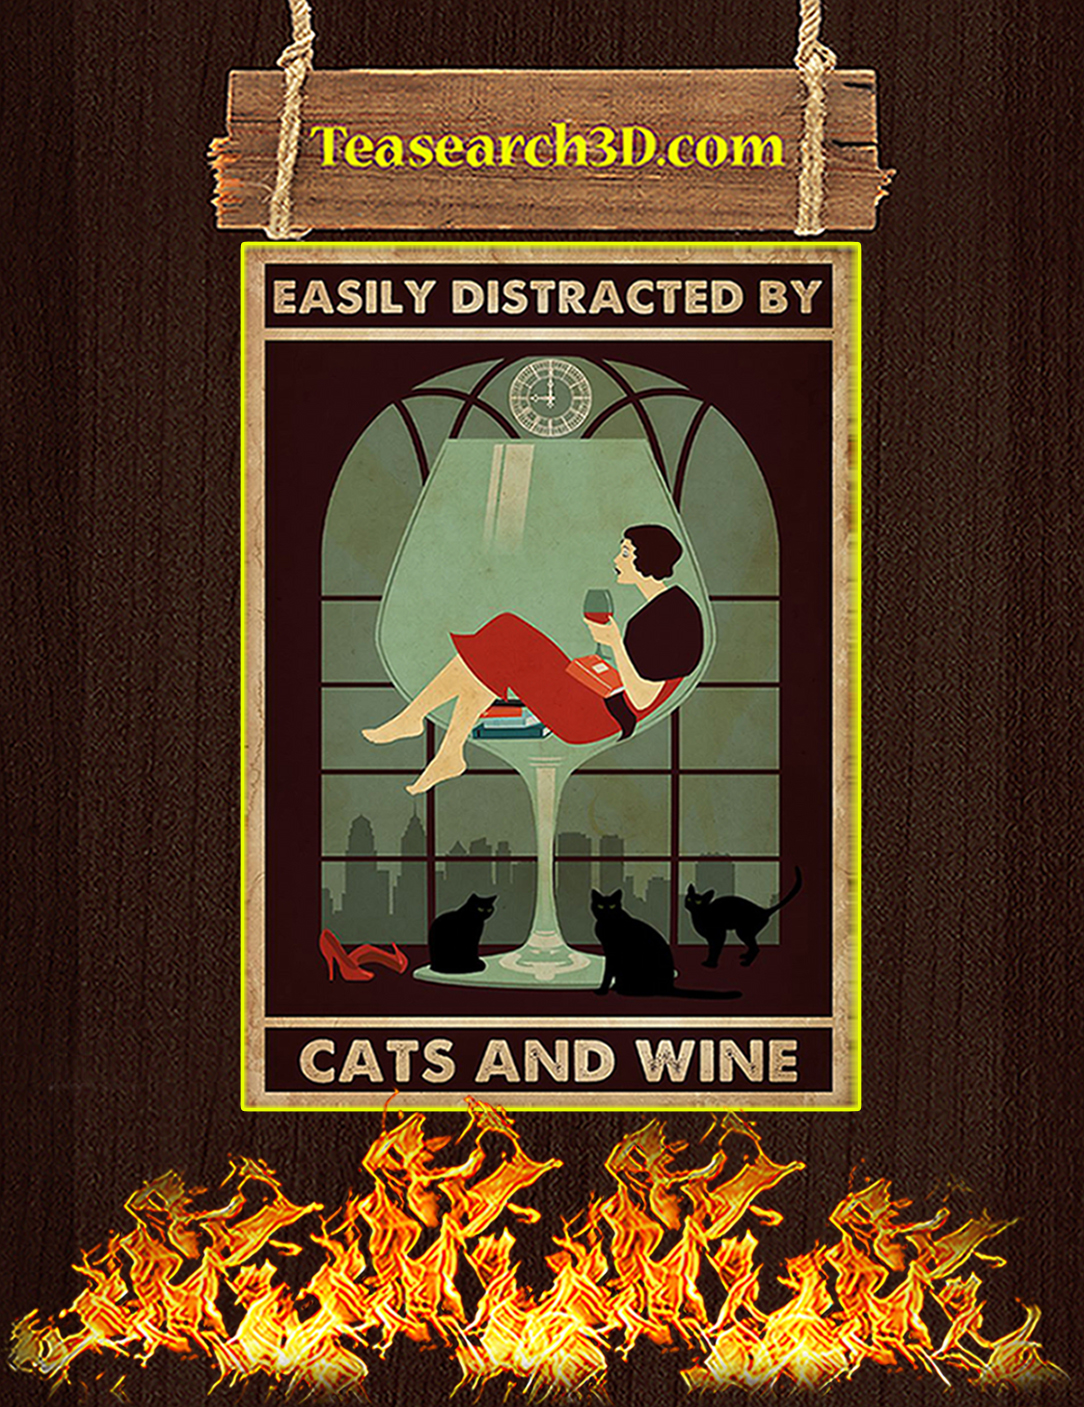 Easily distracted by cats and wine poster A2